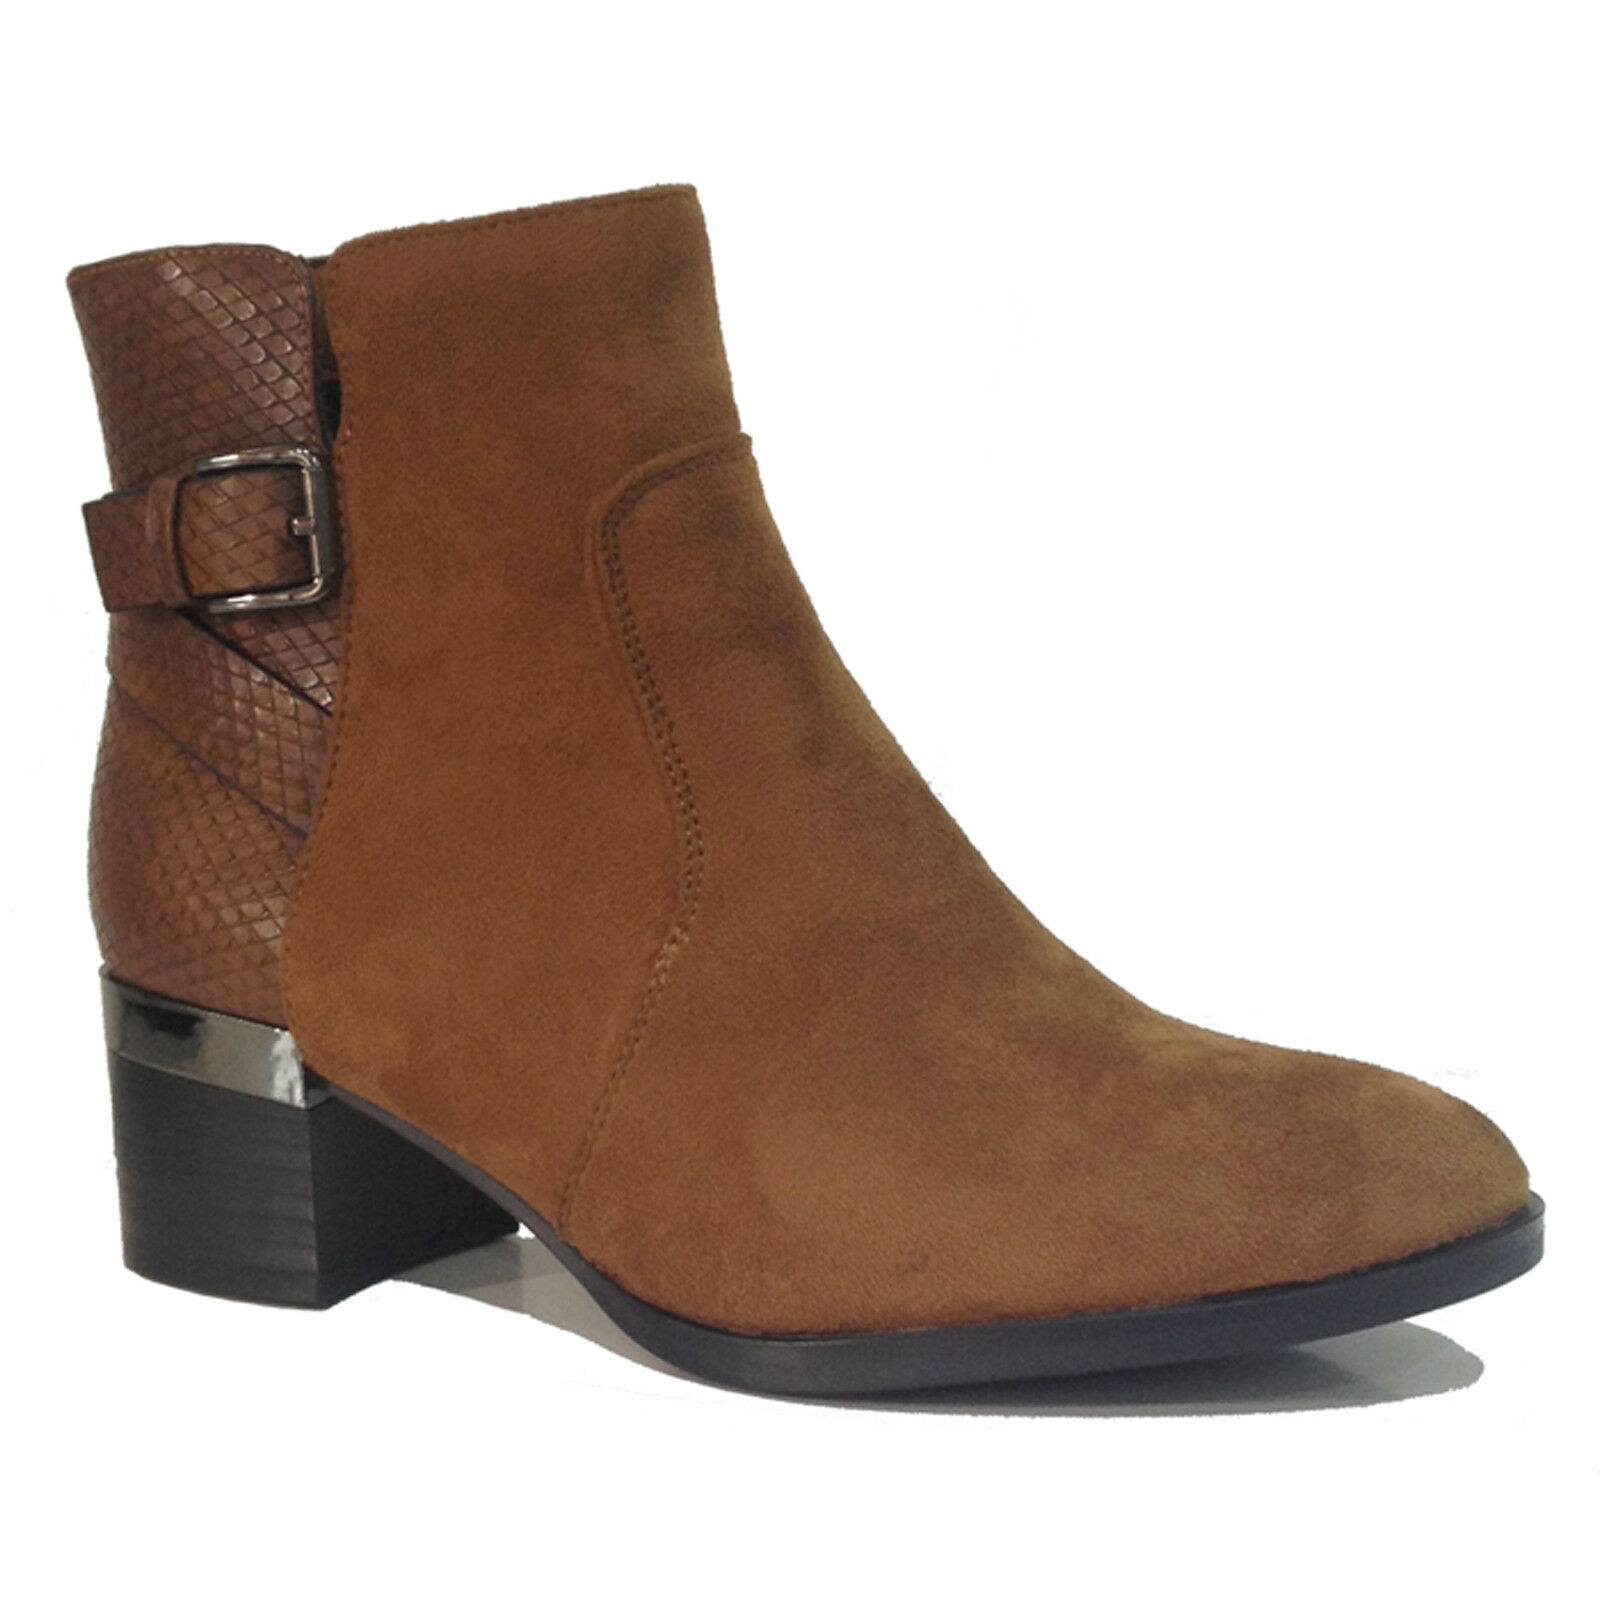 ☼ELEN☼  Bottines - RAXMAX - Ref : 0944